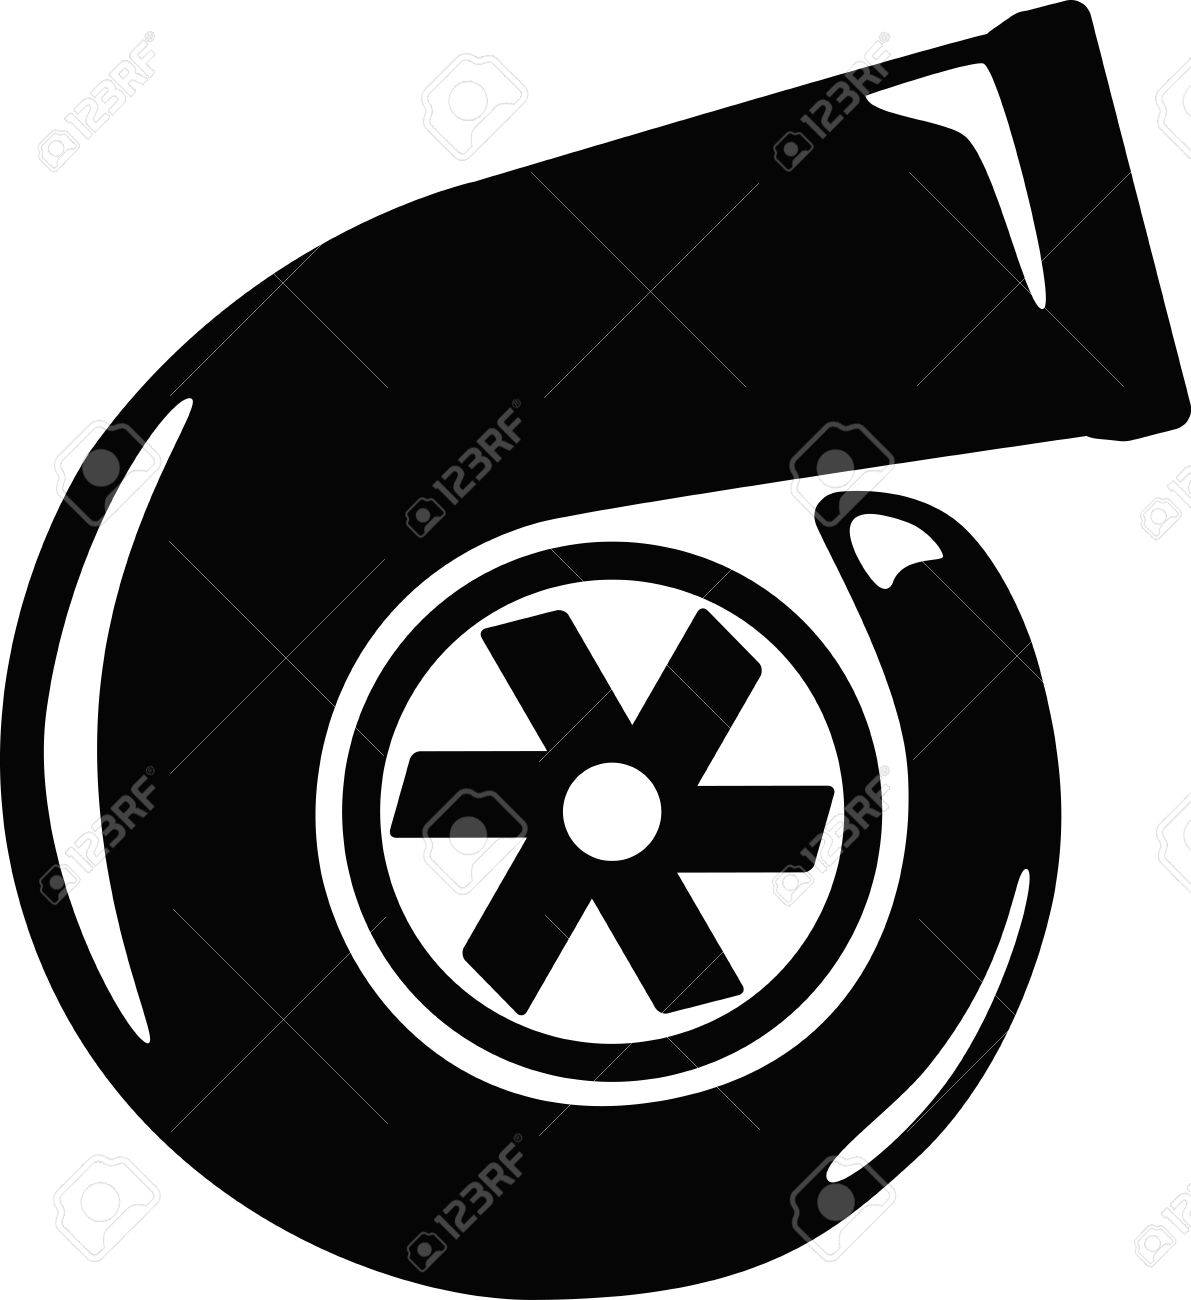 1191x1300 Turbo Charger Vector Illustration Royalty Free Cliparts, Vectors